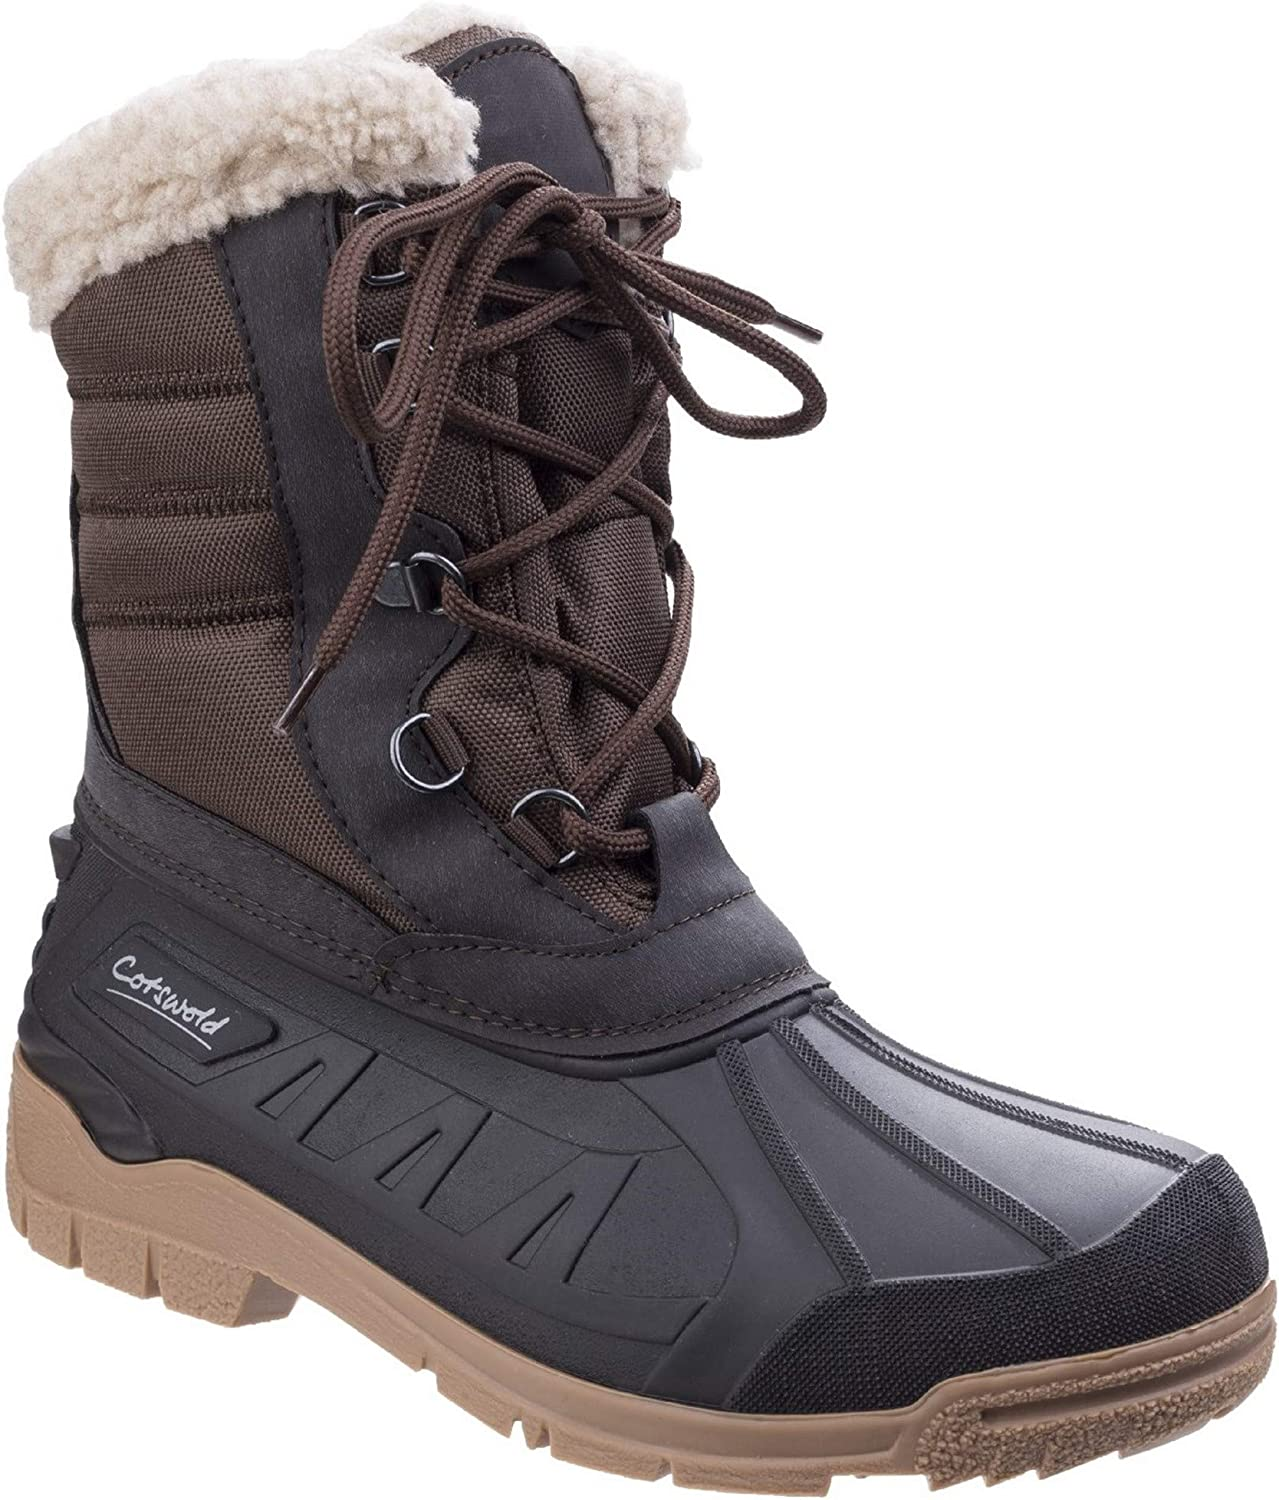 Cotswold Womens Ladies Coset Waterproof Tall Hiking Boots